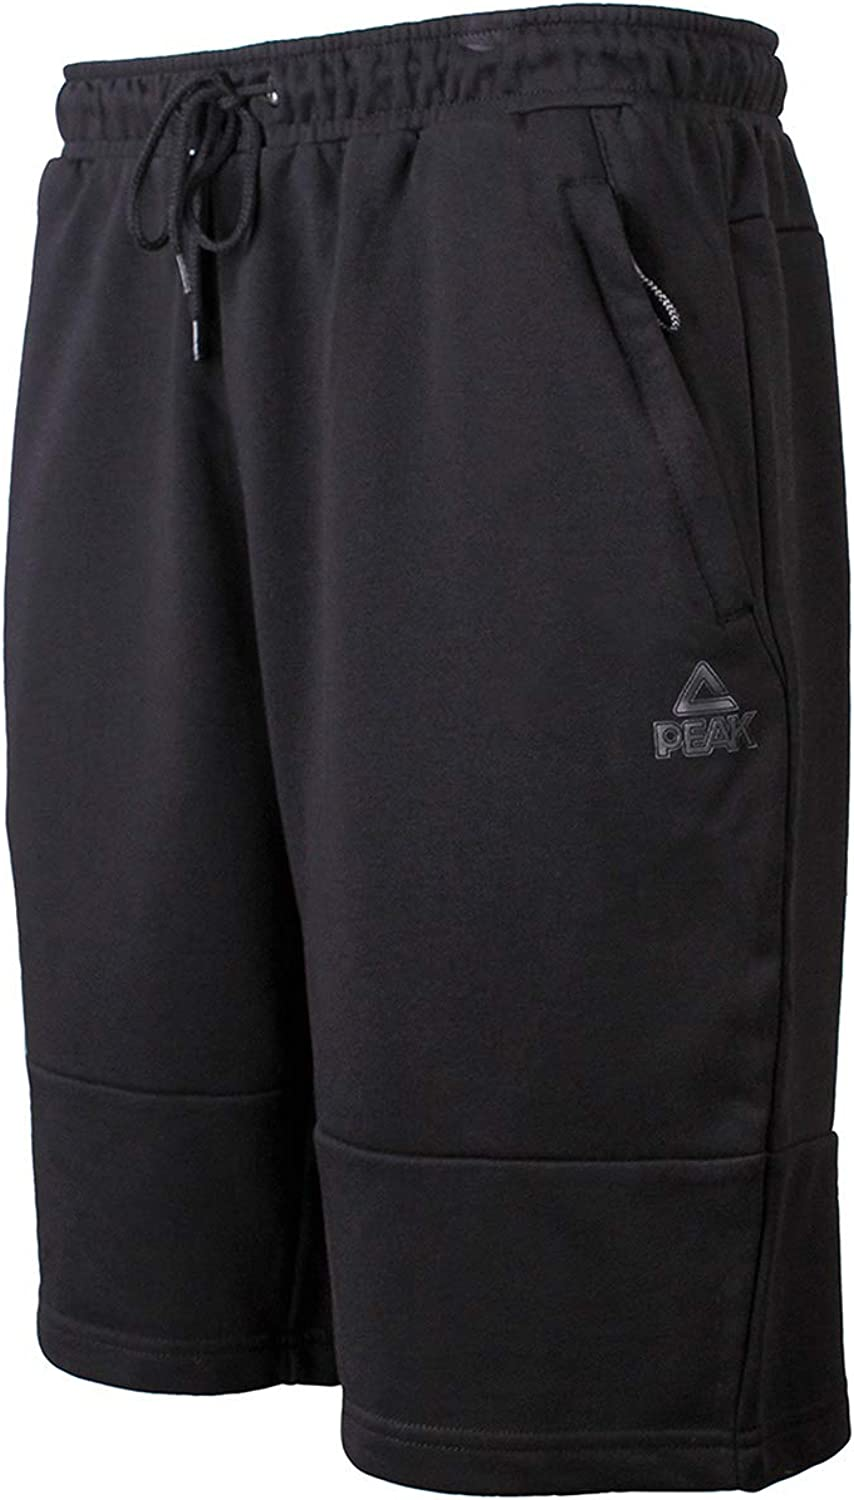 PEAK Men's Cotton Active Athletic Shorts with Pockets,for Home Workouts, Fitness,Running, Basketball